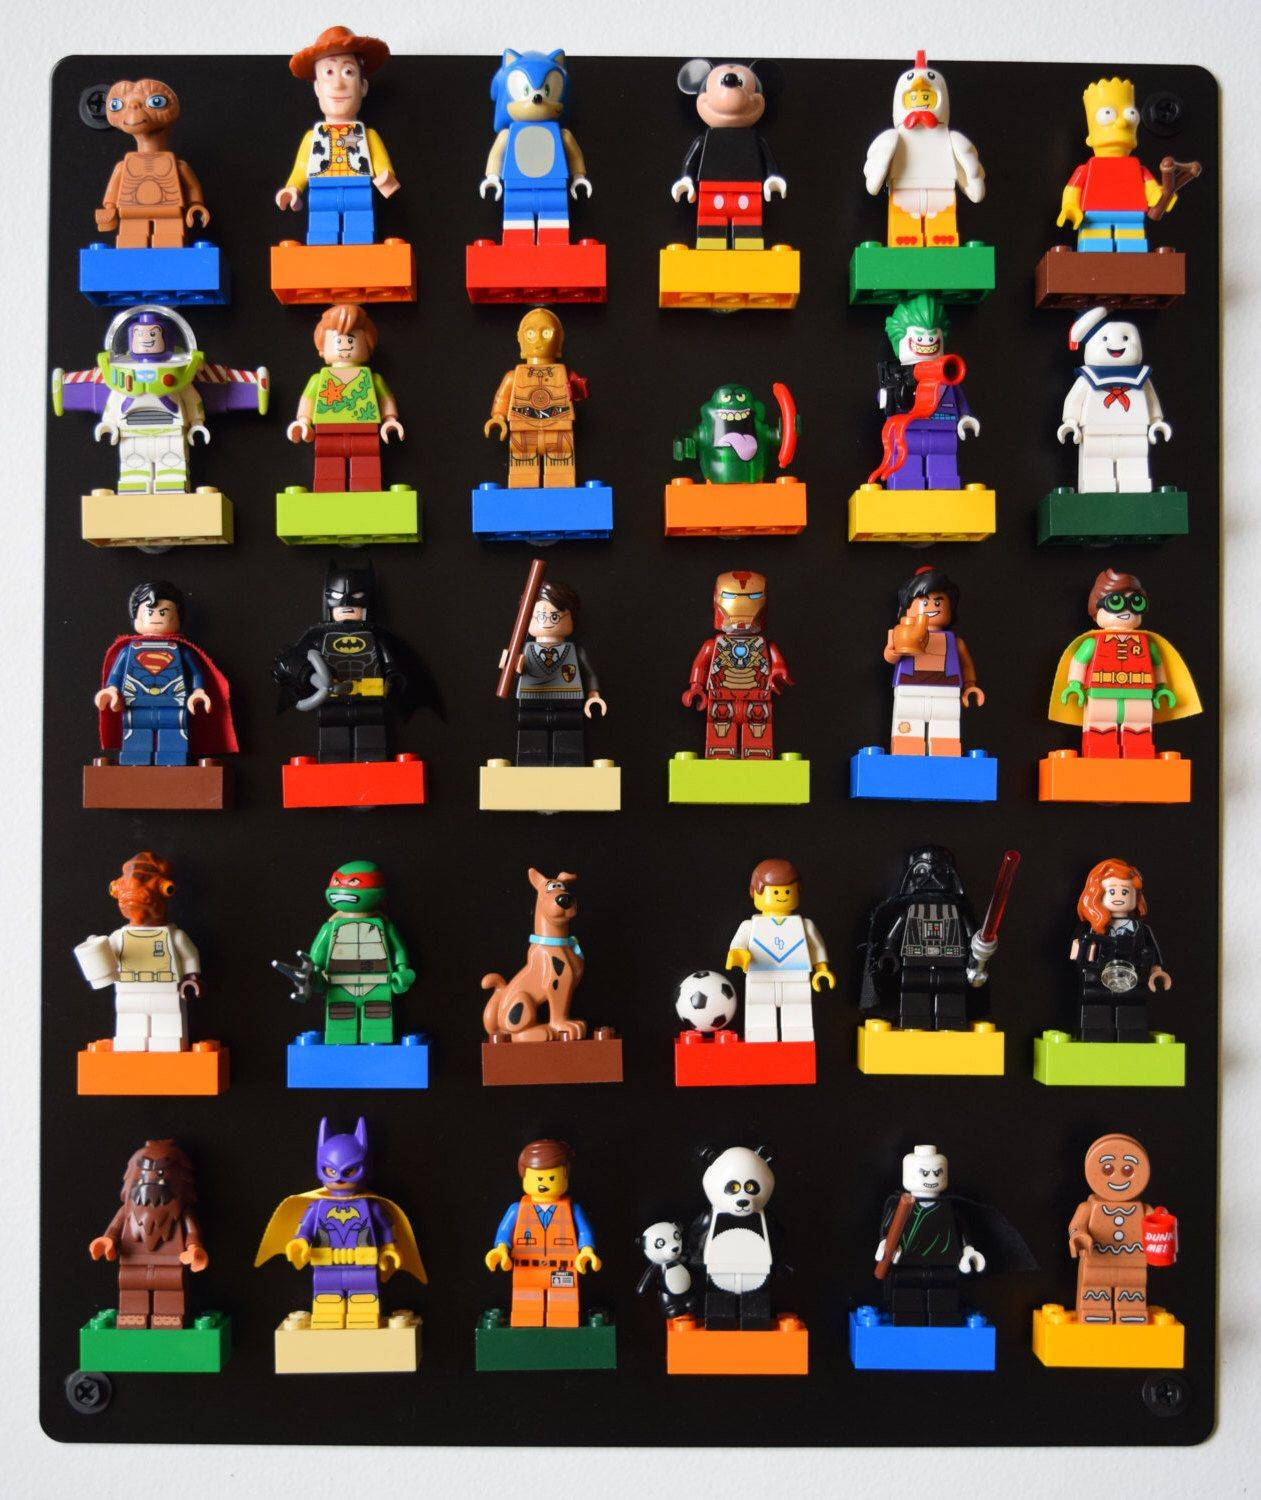 Lego Magnets, epic for showing different Mini Figures